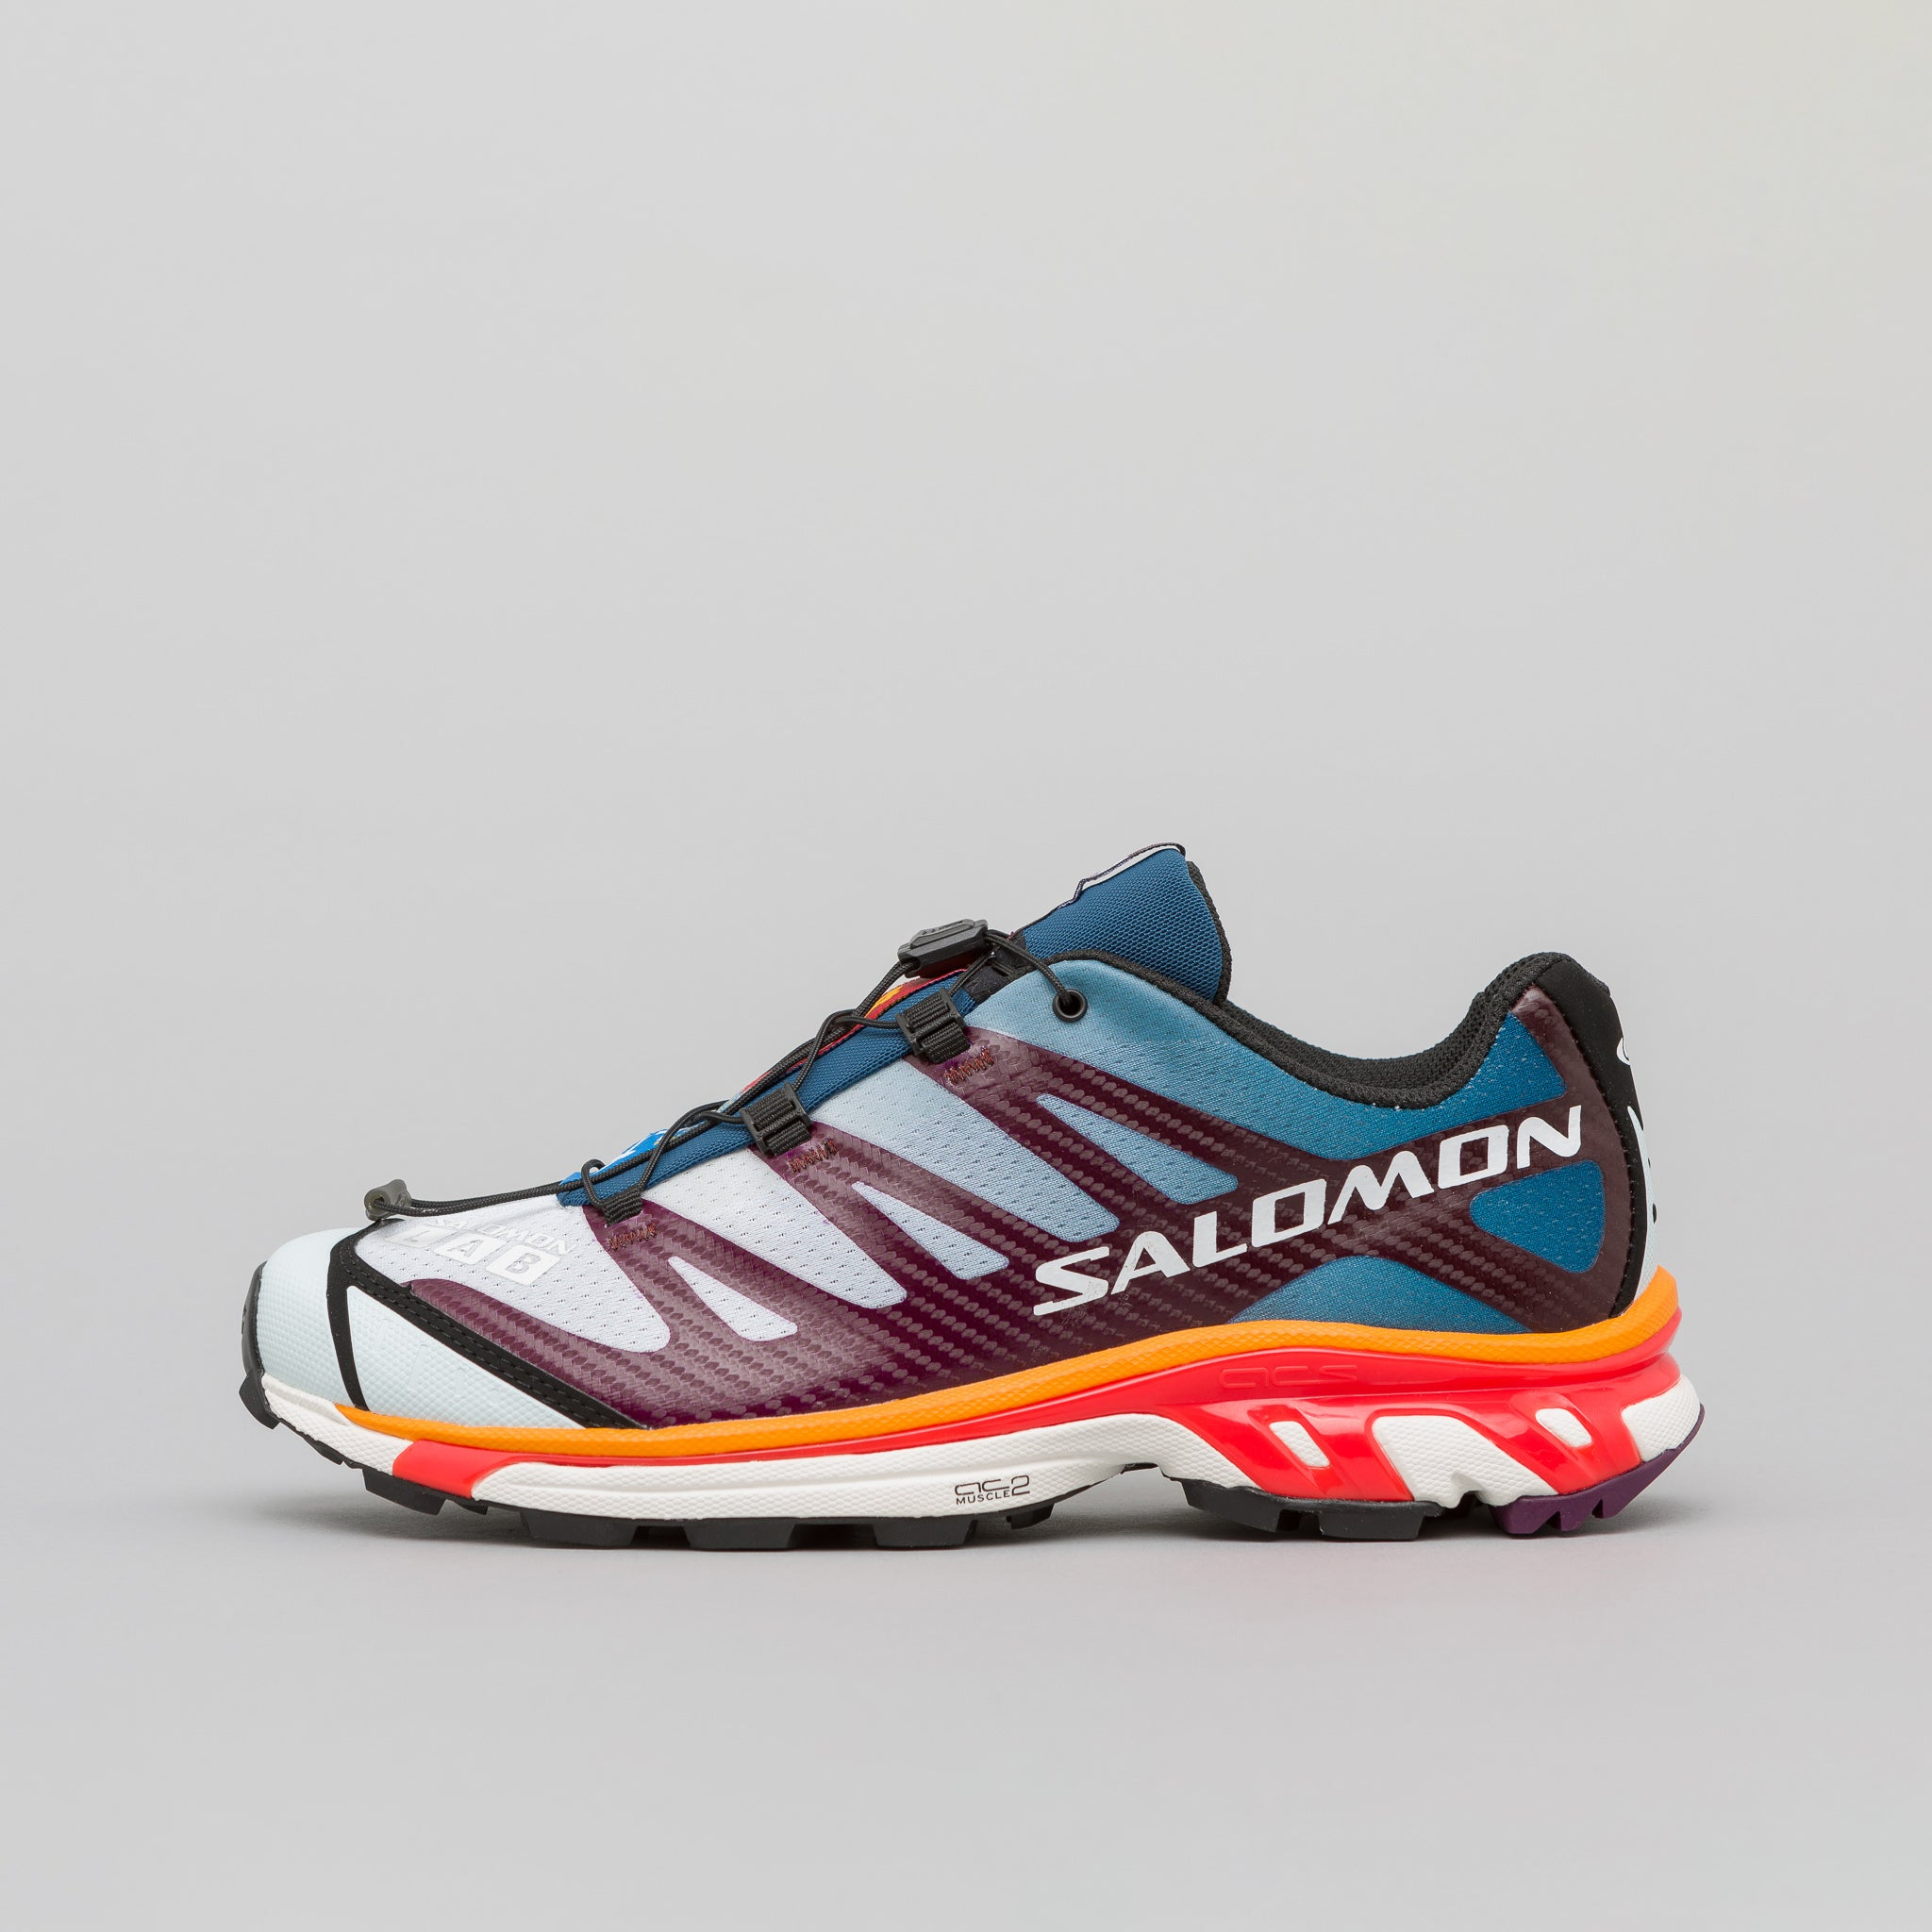 pretty nice ff867 ecbd8 ... Others From SALOMON S LAB. XT-4 ADV in Poseidon Purple Cherry